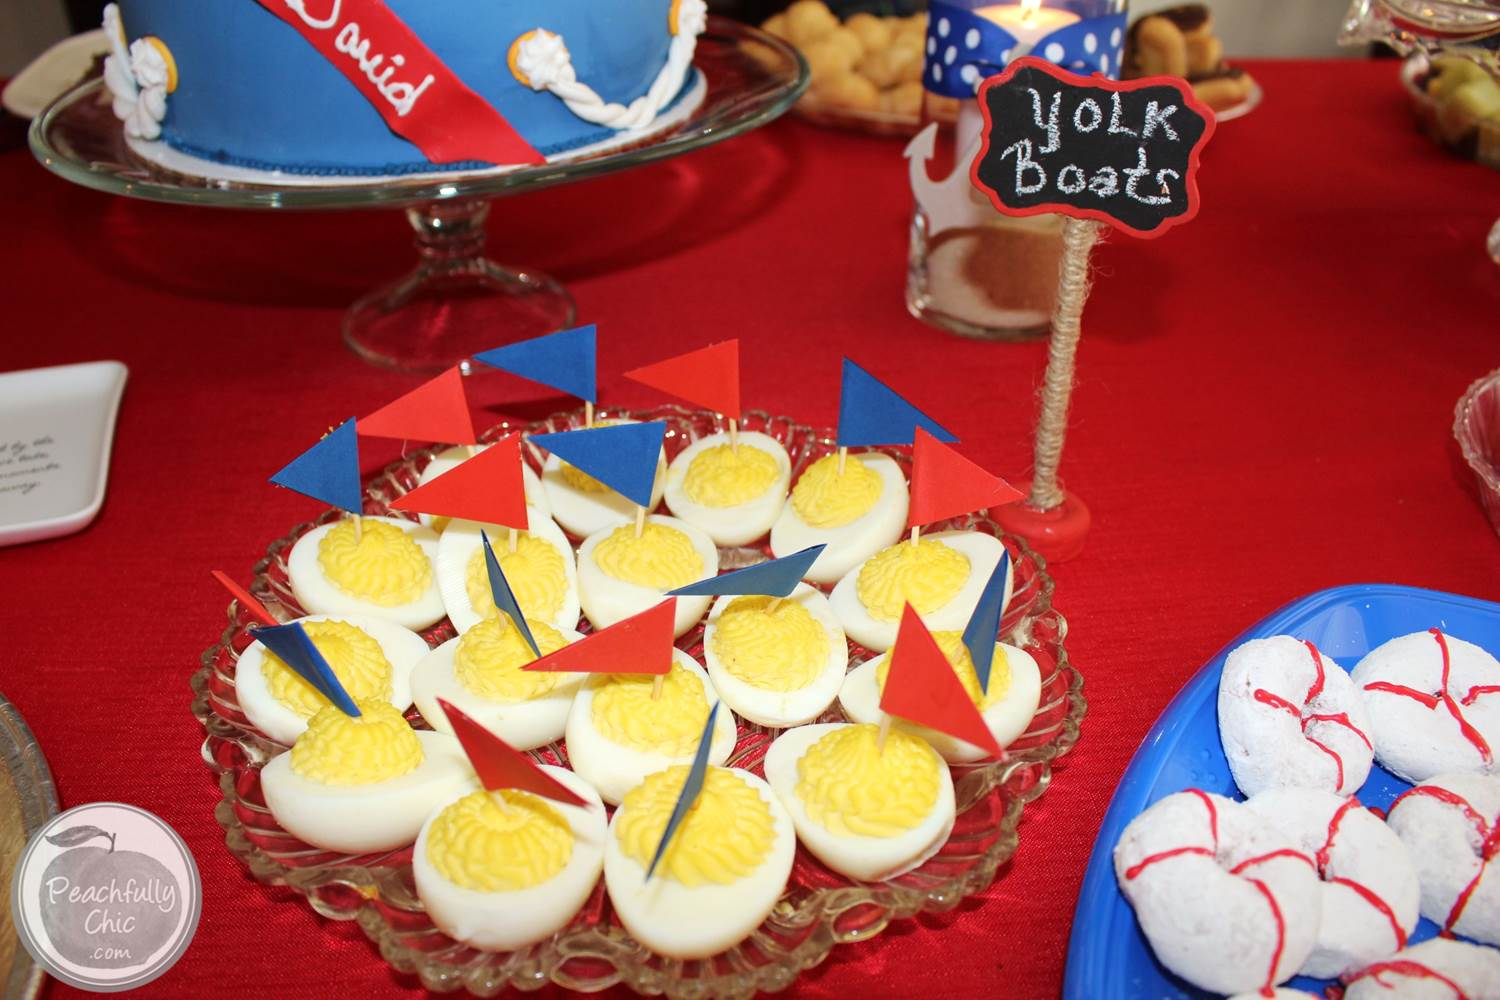 Creative Baby Shower Appetizers Part - 38: ... Nautical-baby-shower-decor-ideas-yolk-boats ...